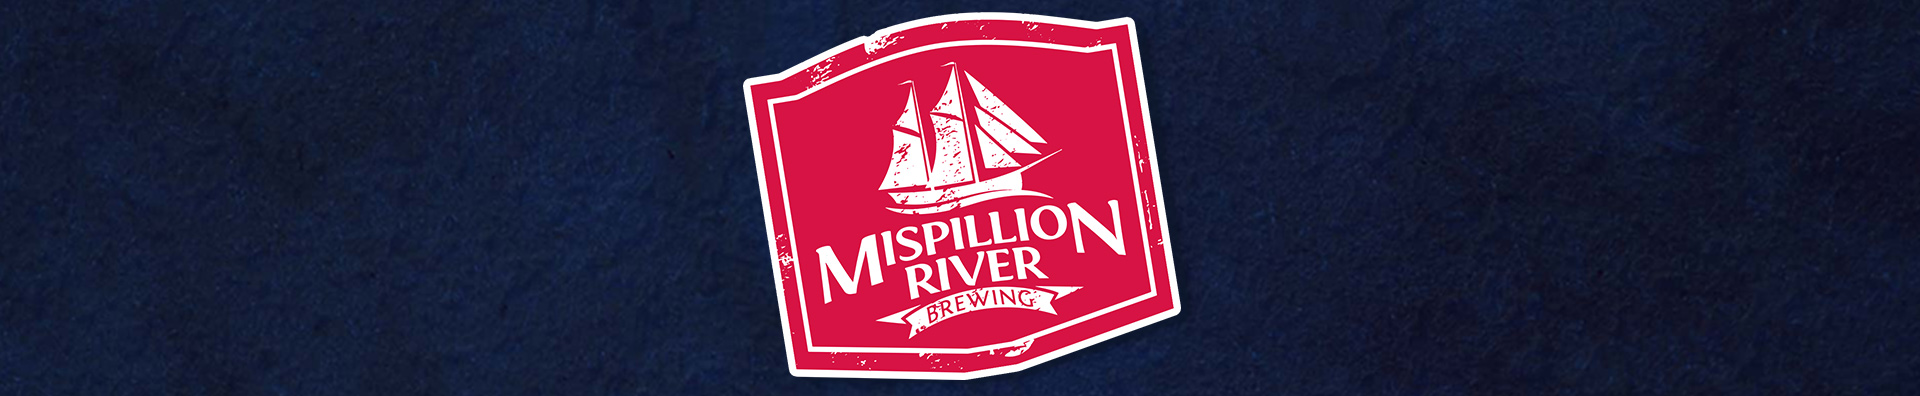 Mispillion River Brewing